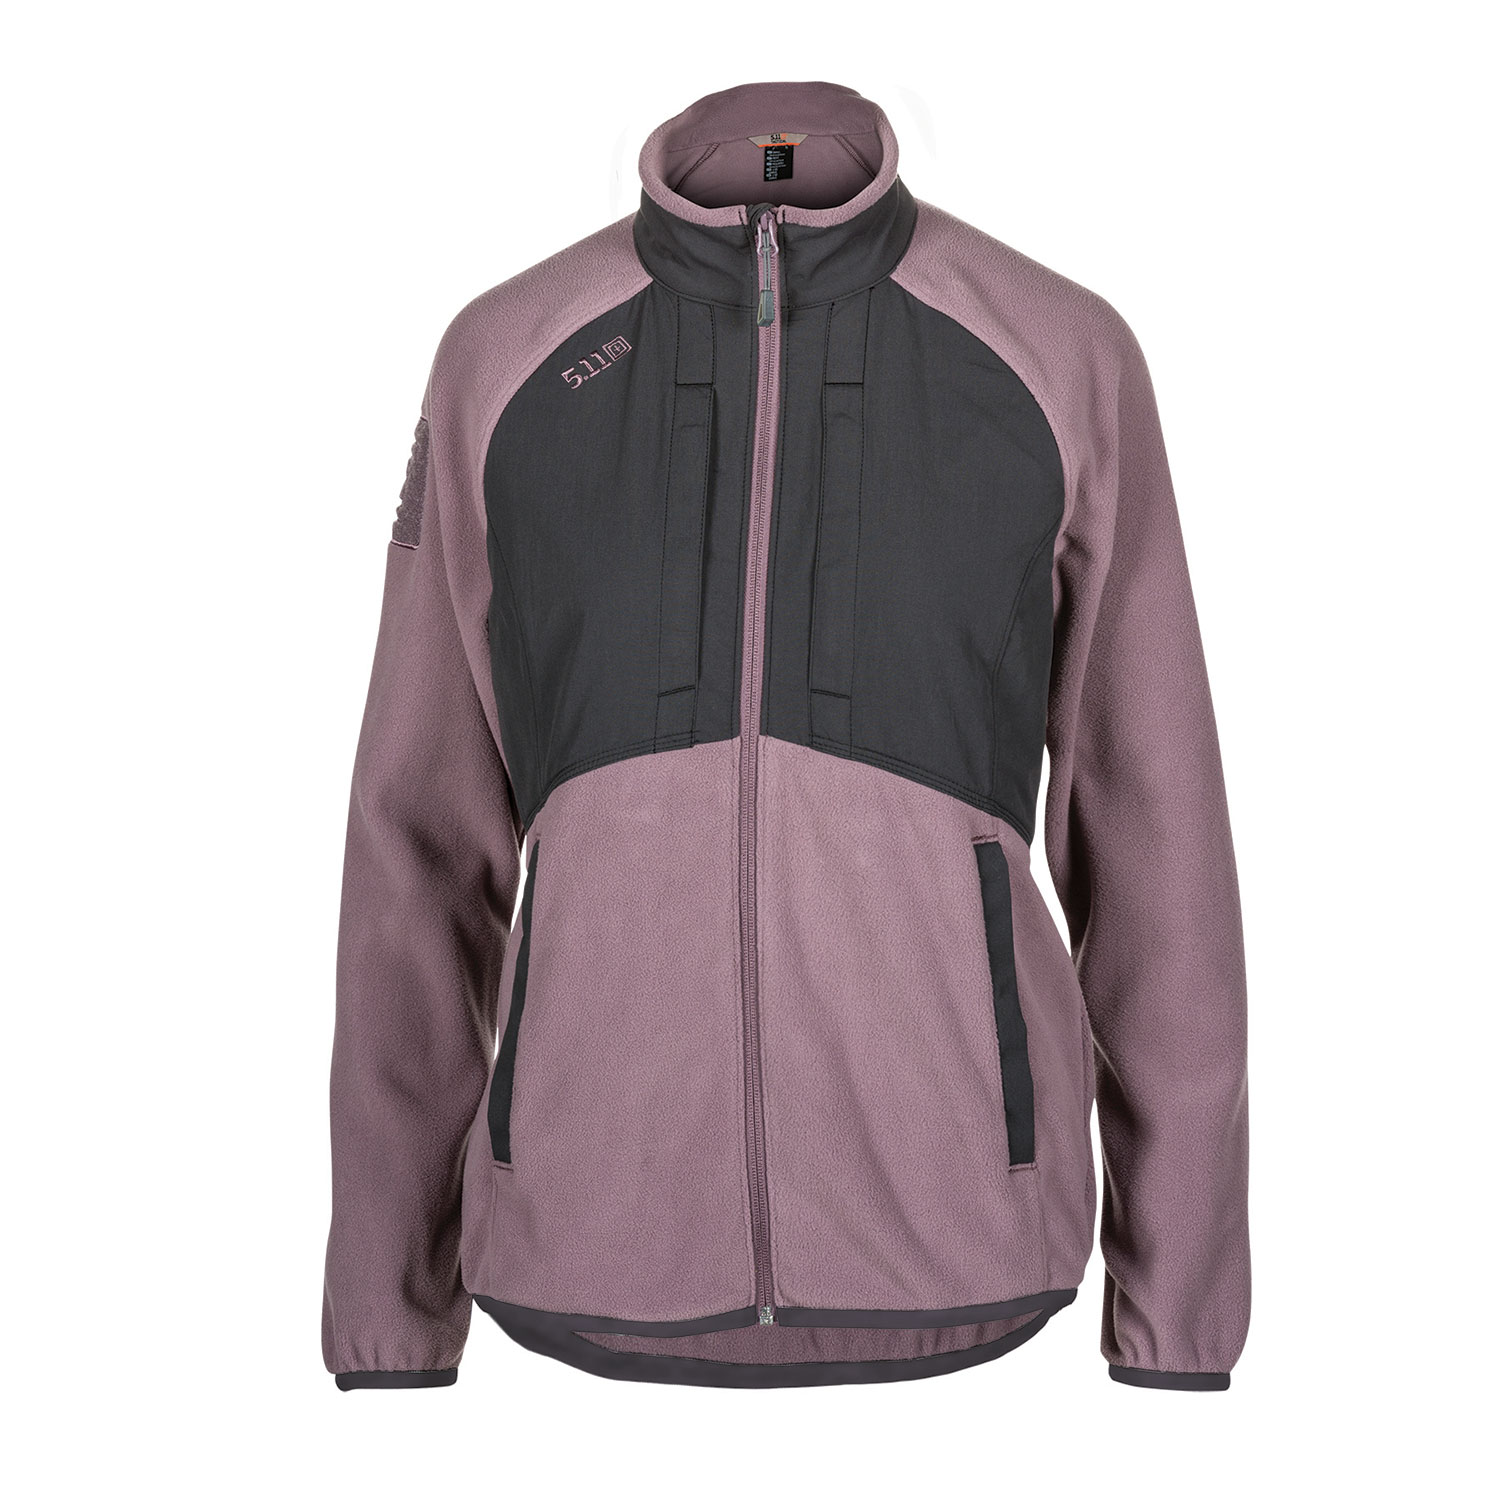 5.11 Womens Apollo Tech Fleece Jacket